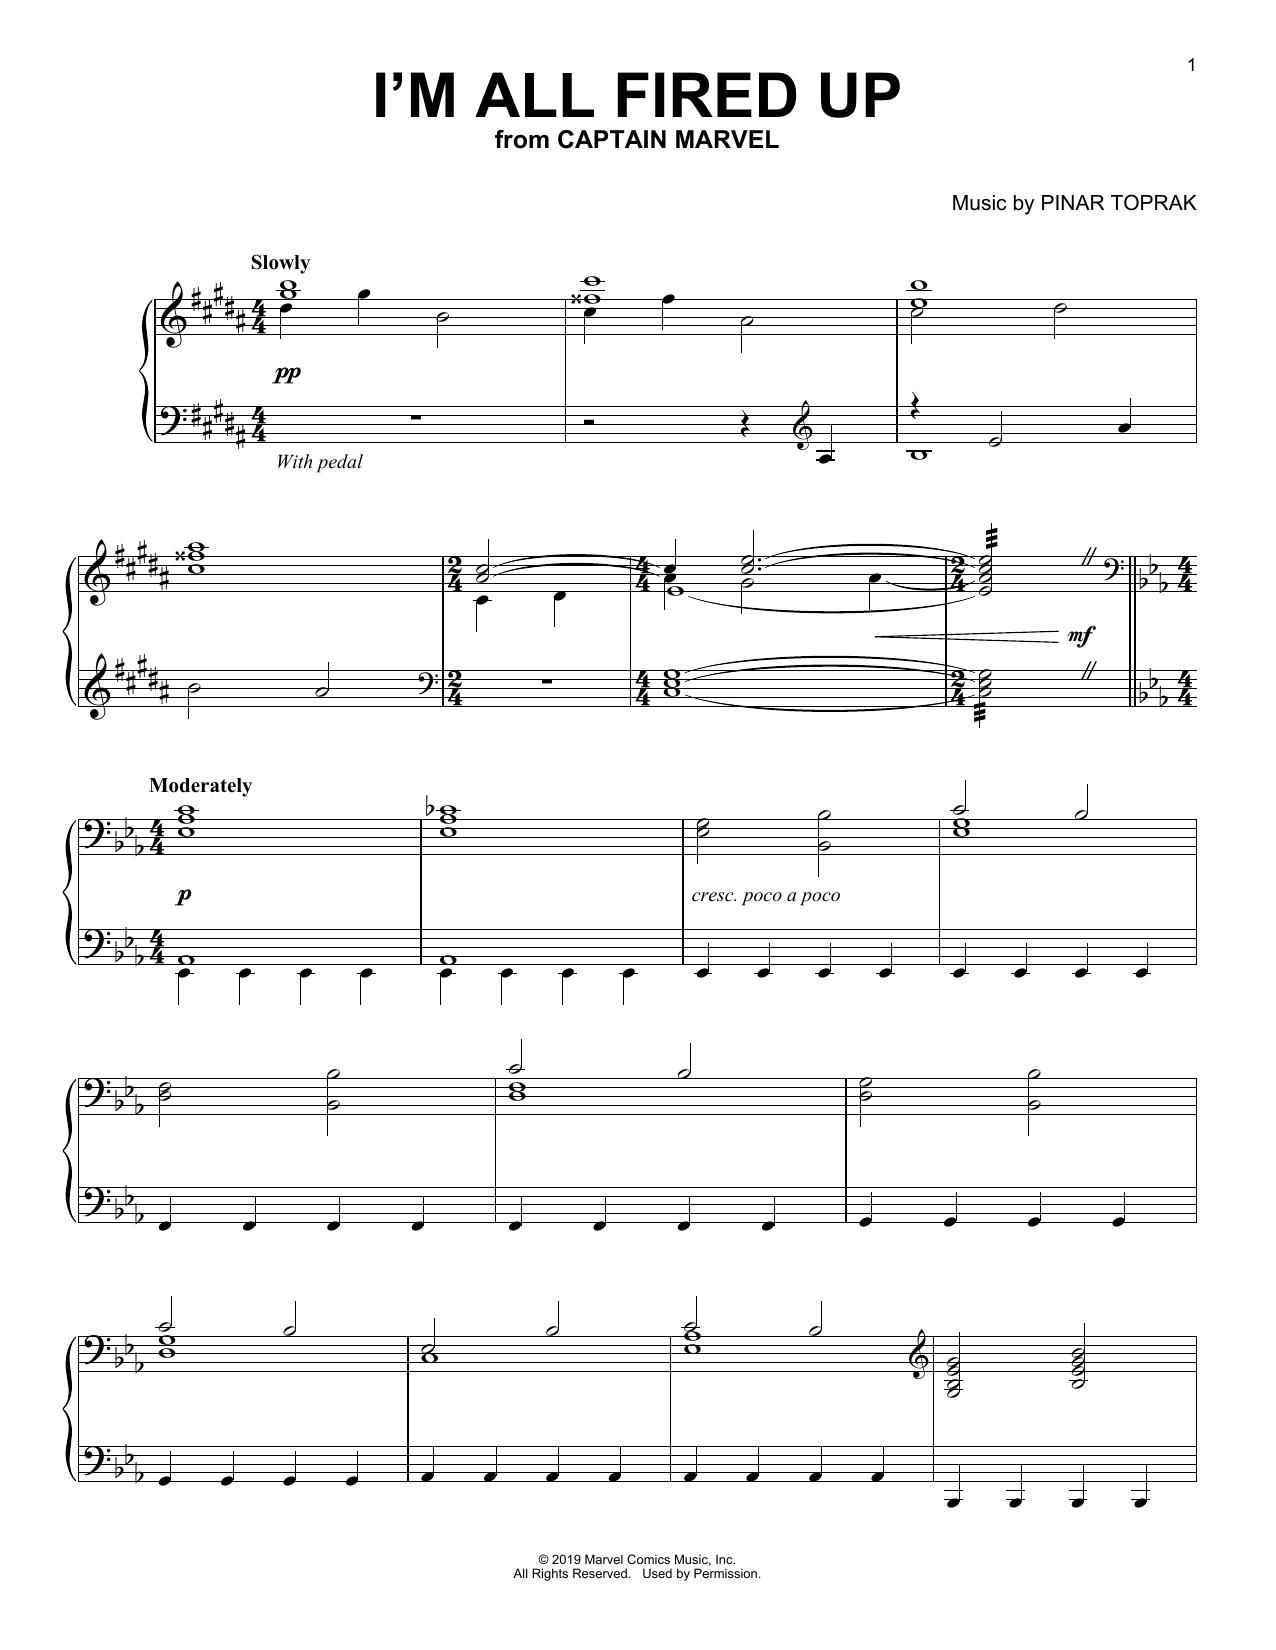 Pinar Toprak I'm All Fired Up (from Captain Marvel) sheet music notes and chords